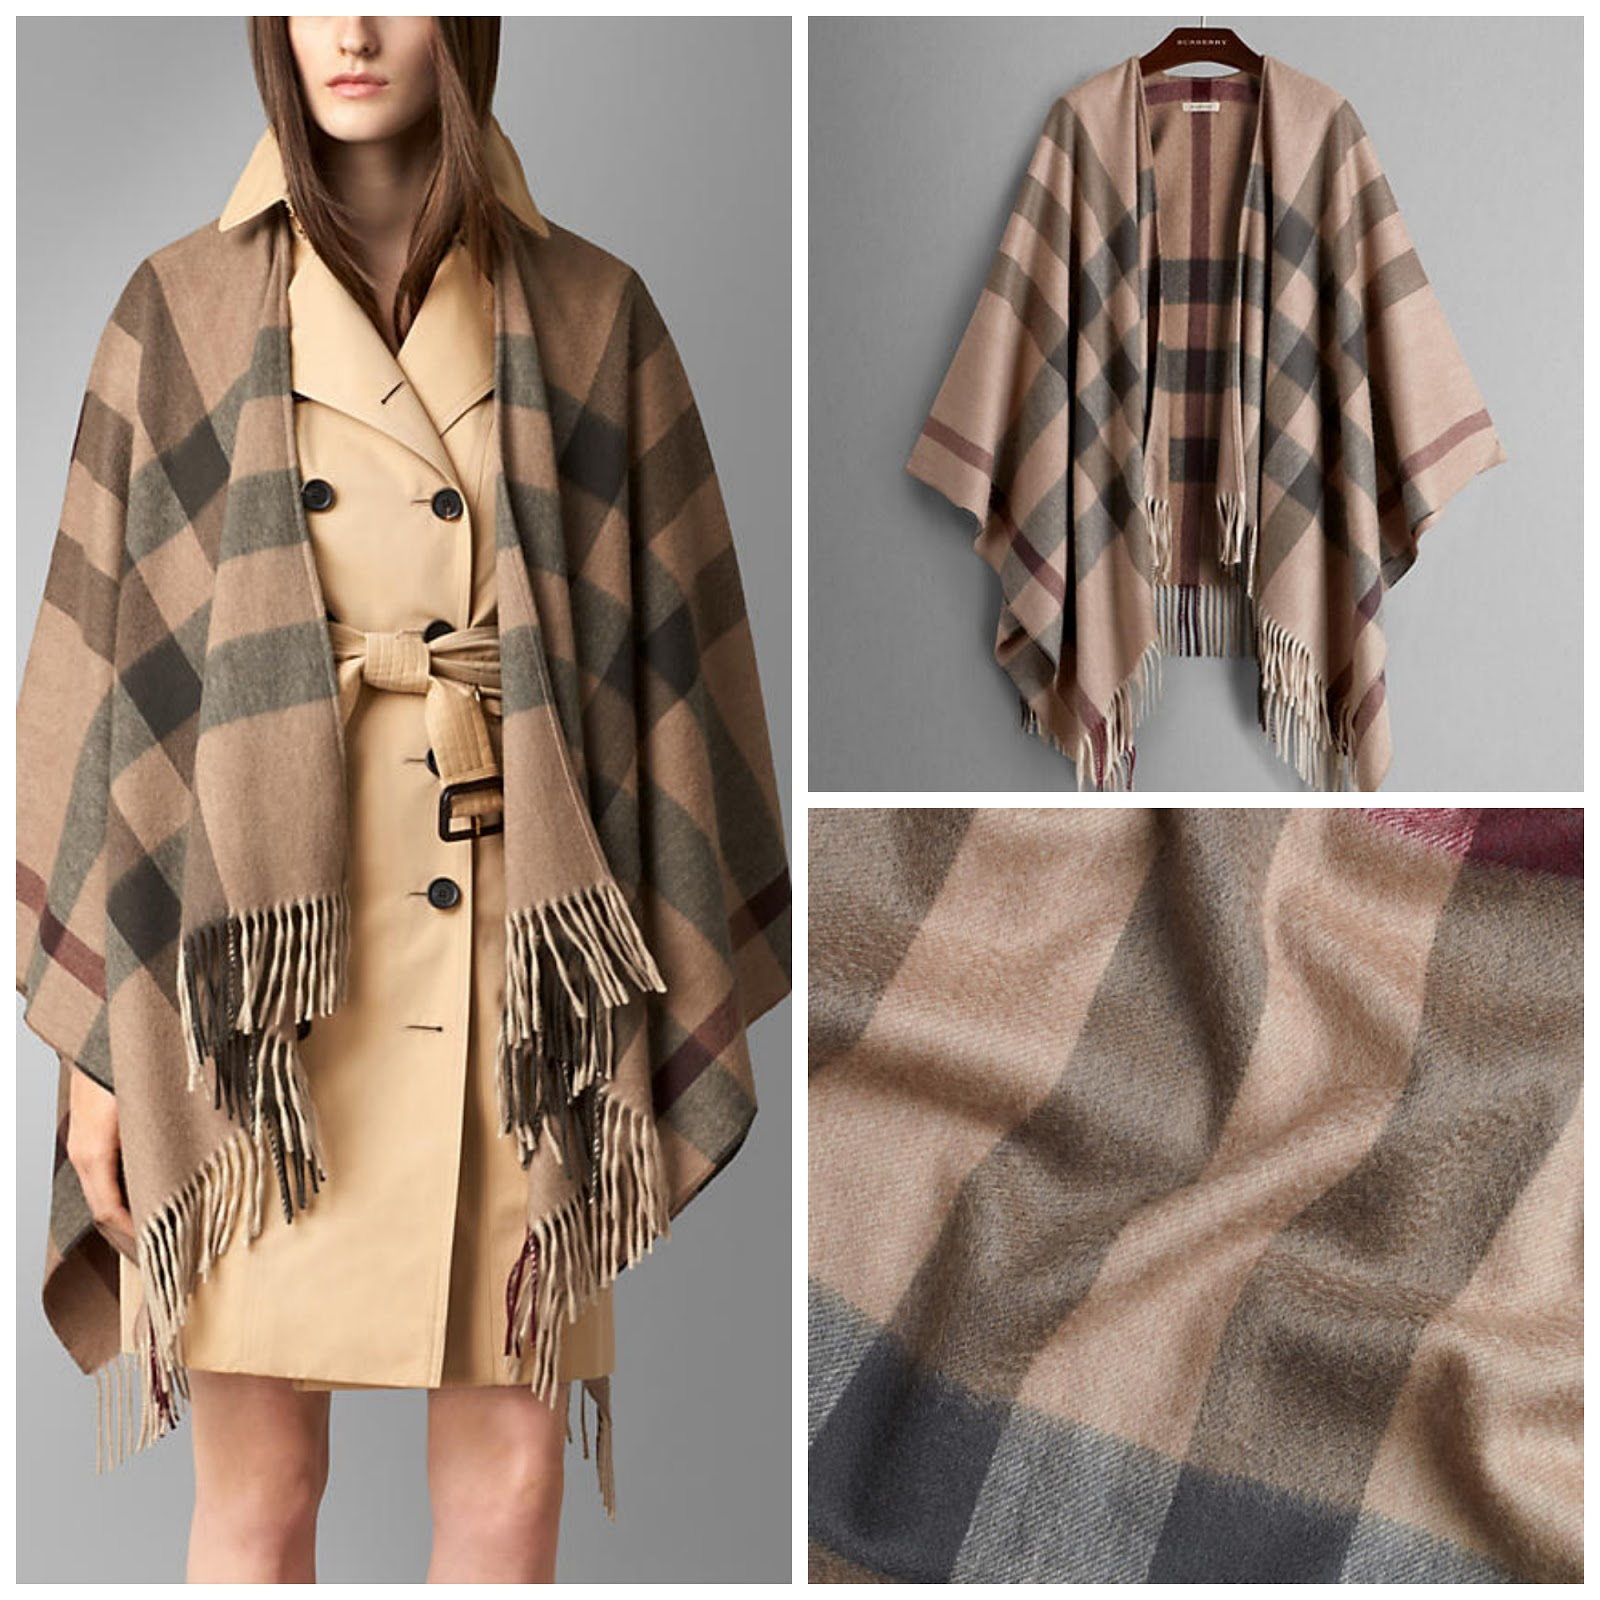 Burberry Check Cashmere and Wool Poncho 2018 Unisex Sale Online Clearance Classic Buy Cheap Discounts Clearance Official Site qyO0Tdm71